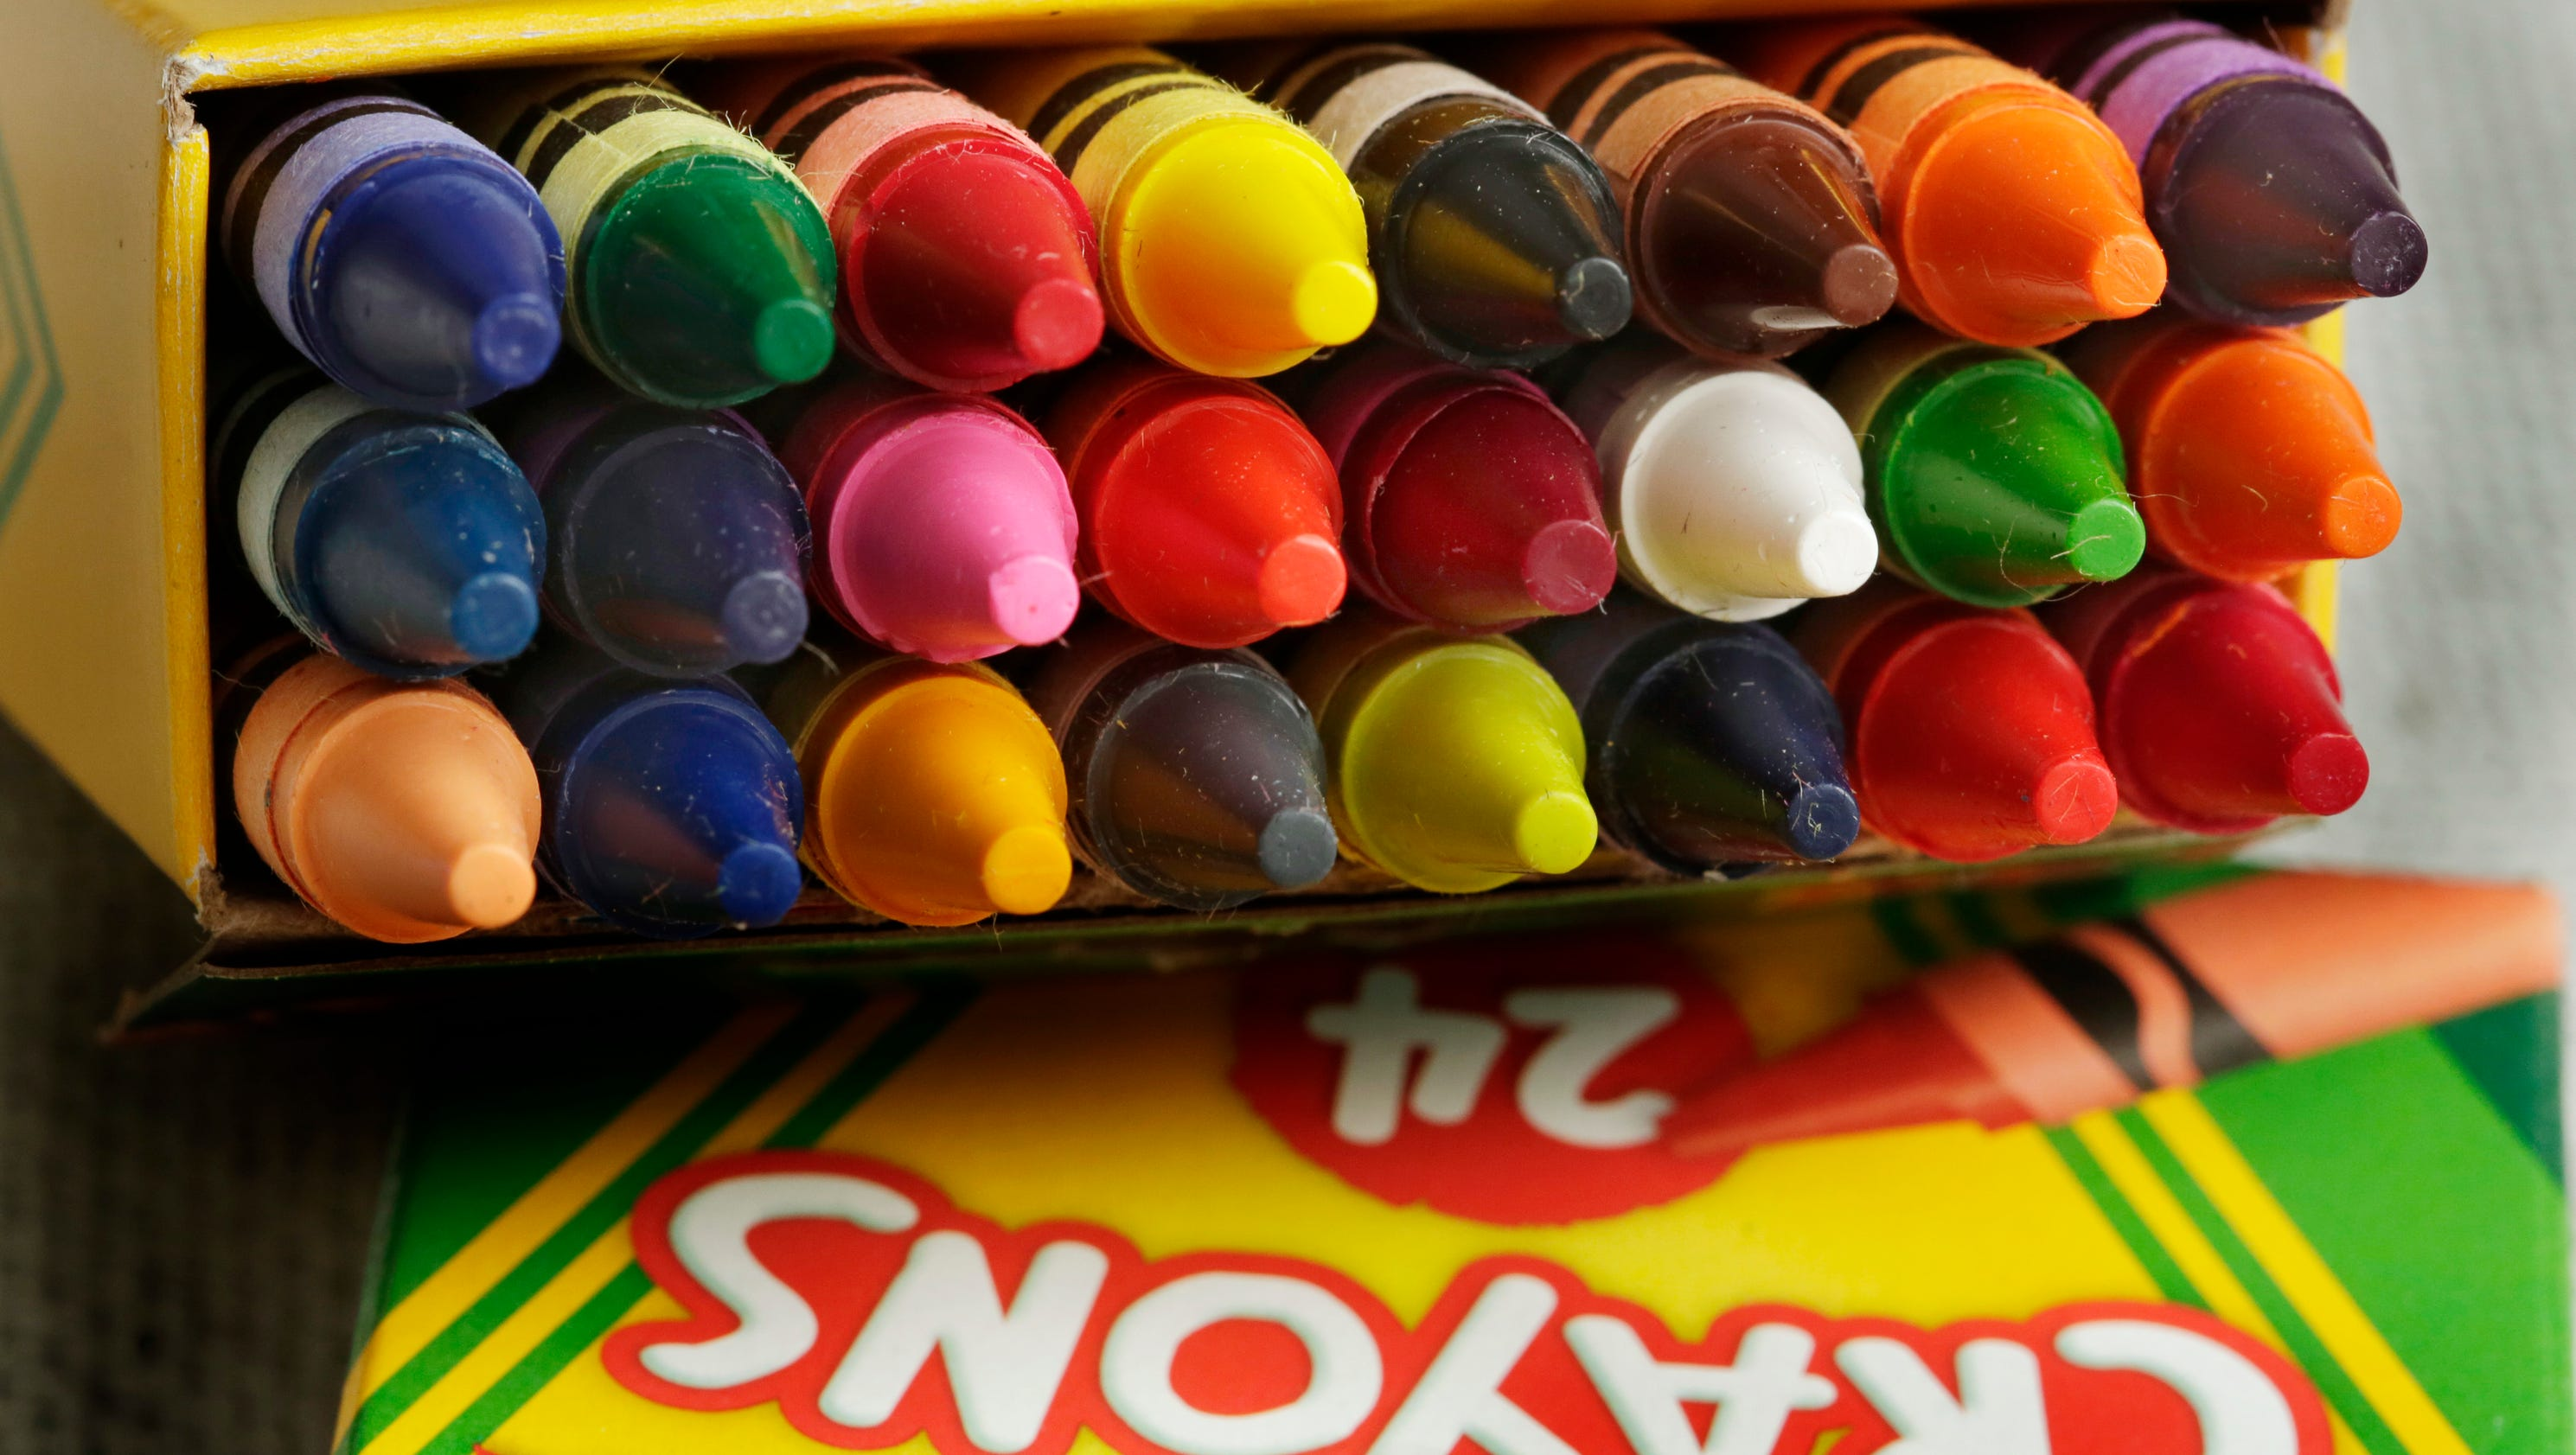 Crayola gives two clues about Dandelion